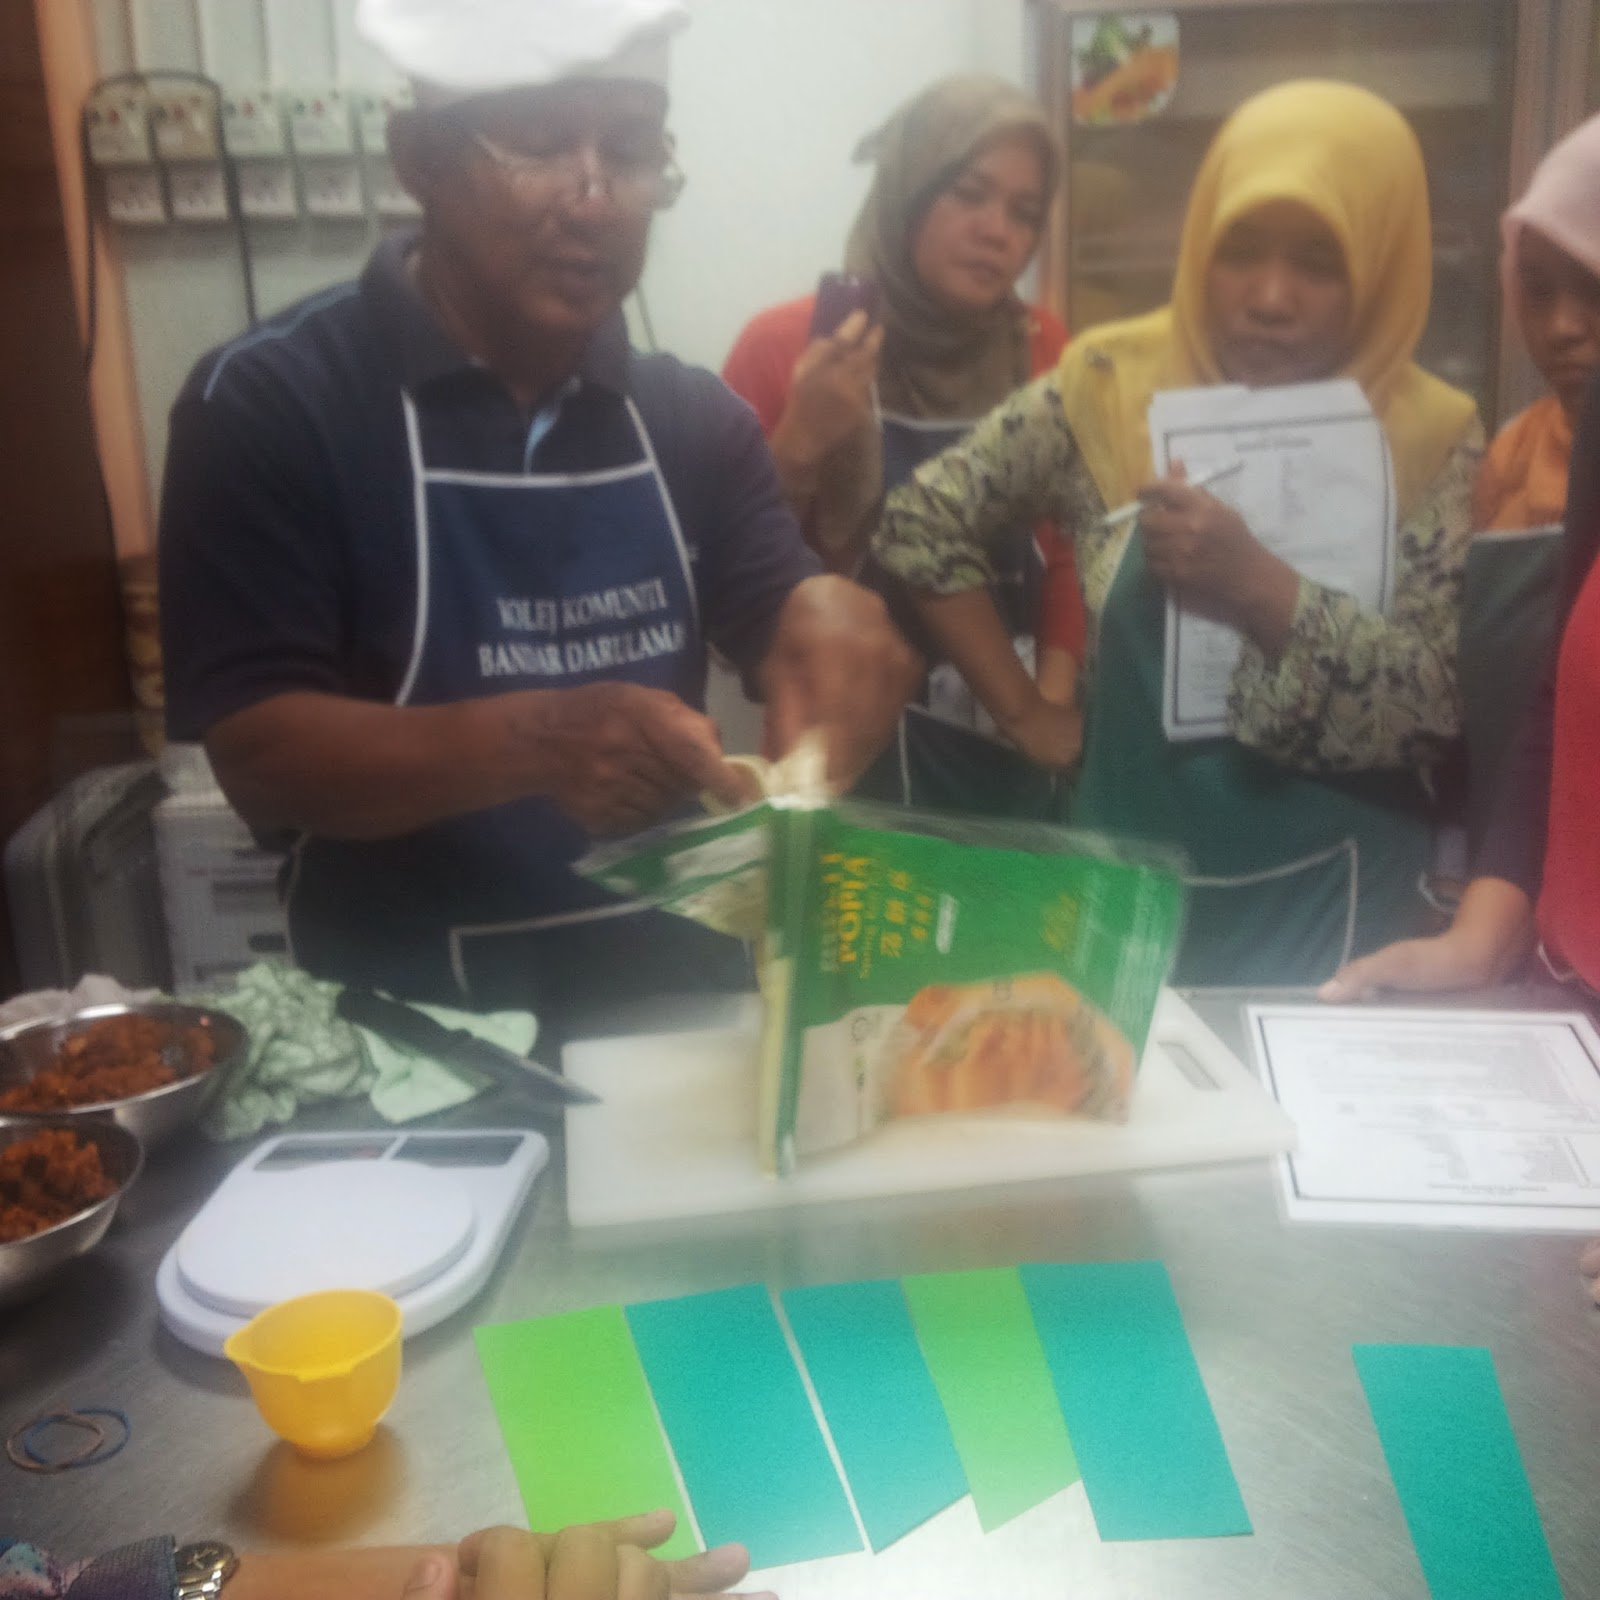 cooking class kedah, cooking class kuala lumpur, cooking class malaysia., curry puff, food, how to make curry puff, how to make samosa, karipap, kolej komuniti, recipes, samosa